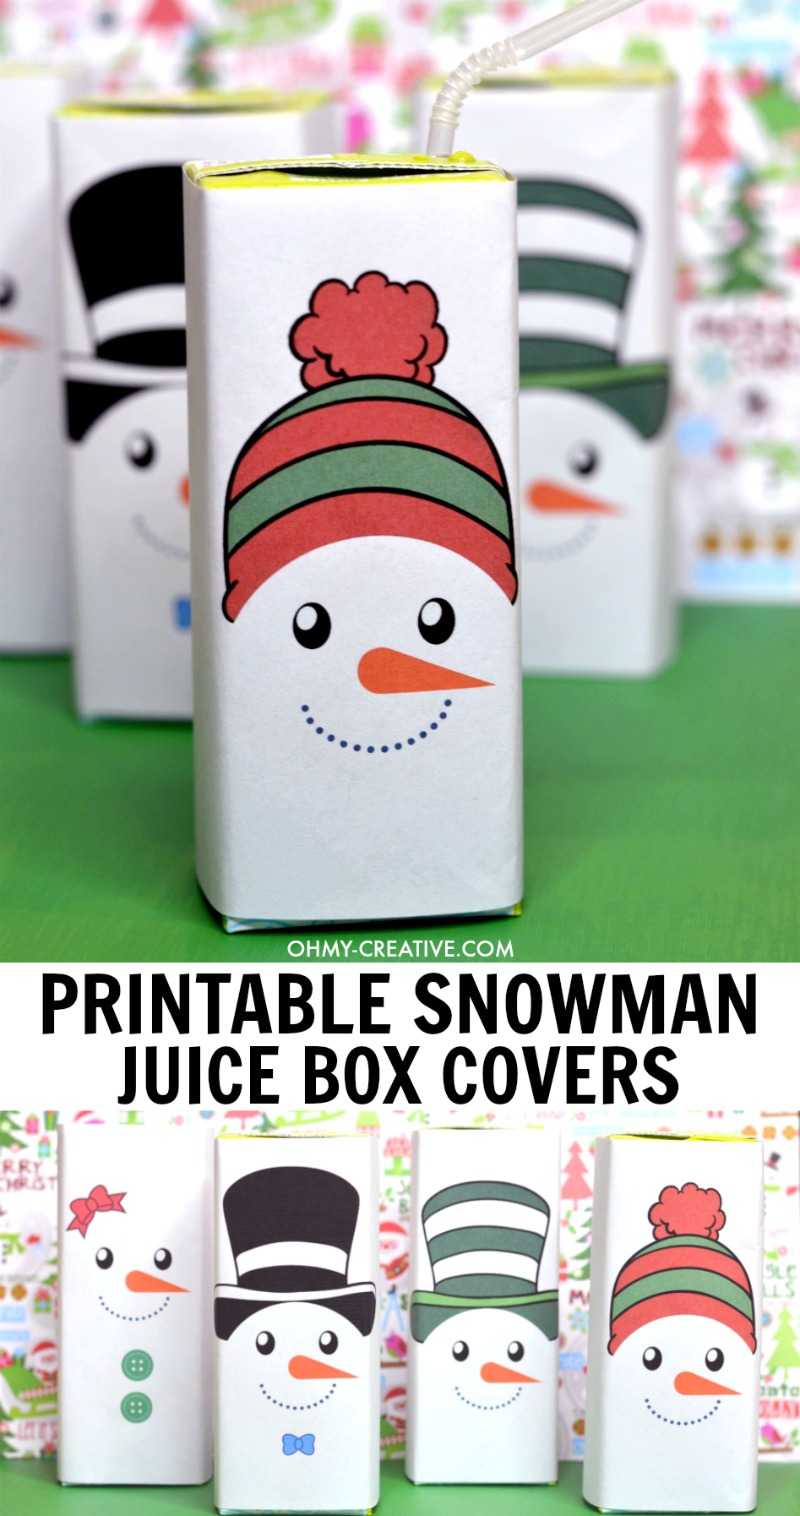 picture regarding Snowman Candy Bar Wrapper Free Printable identify Totally free Printable Snowman Juice Box Handles - Oh My Imaginative